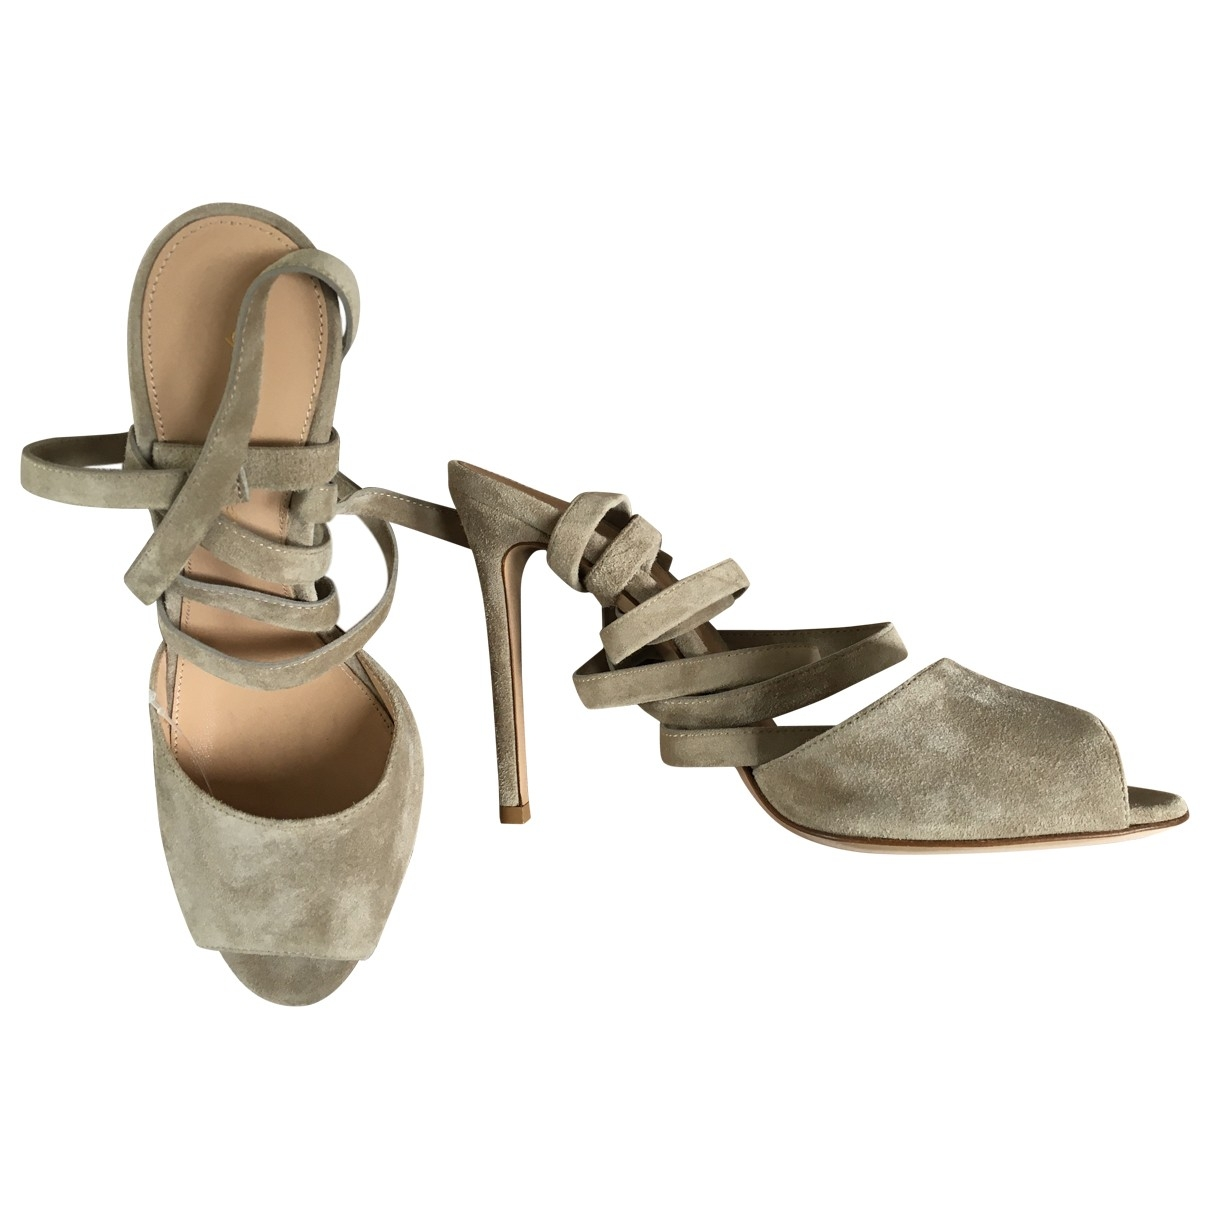 Gianvito Rossi \N Beige Suede Heels for Women 37 EU